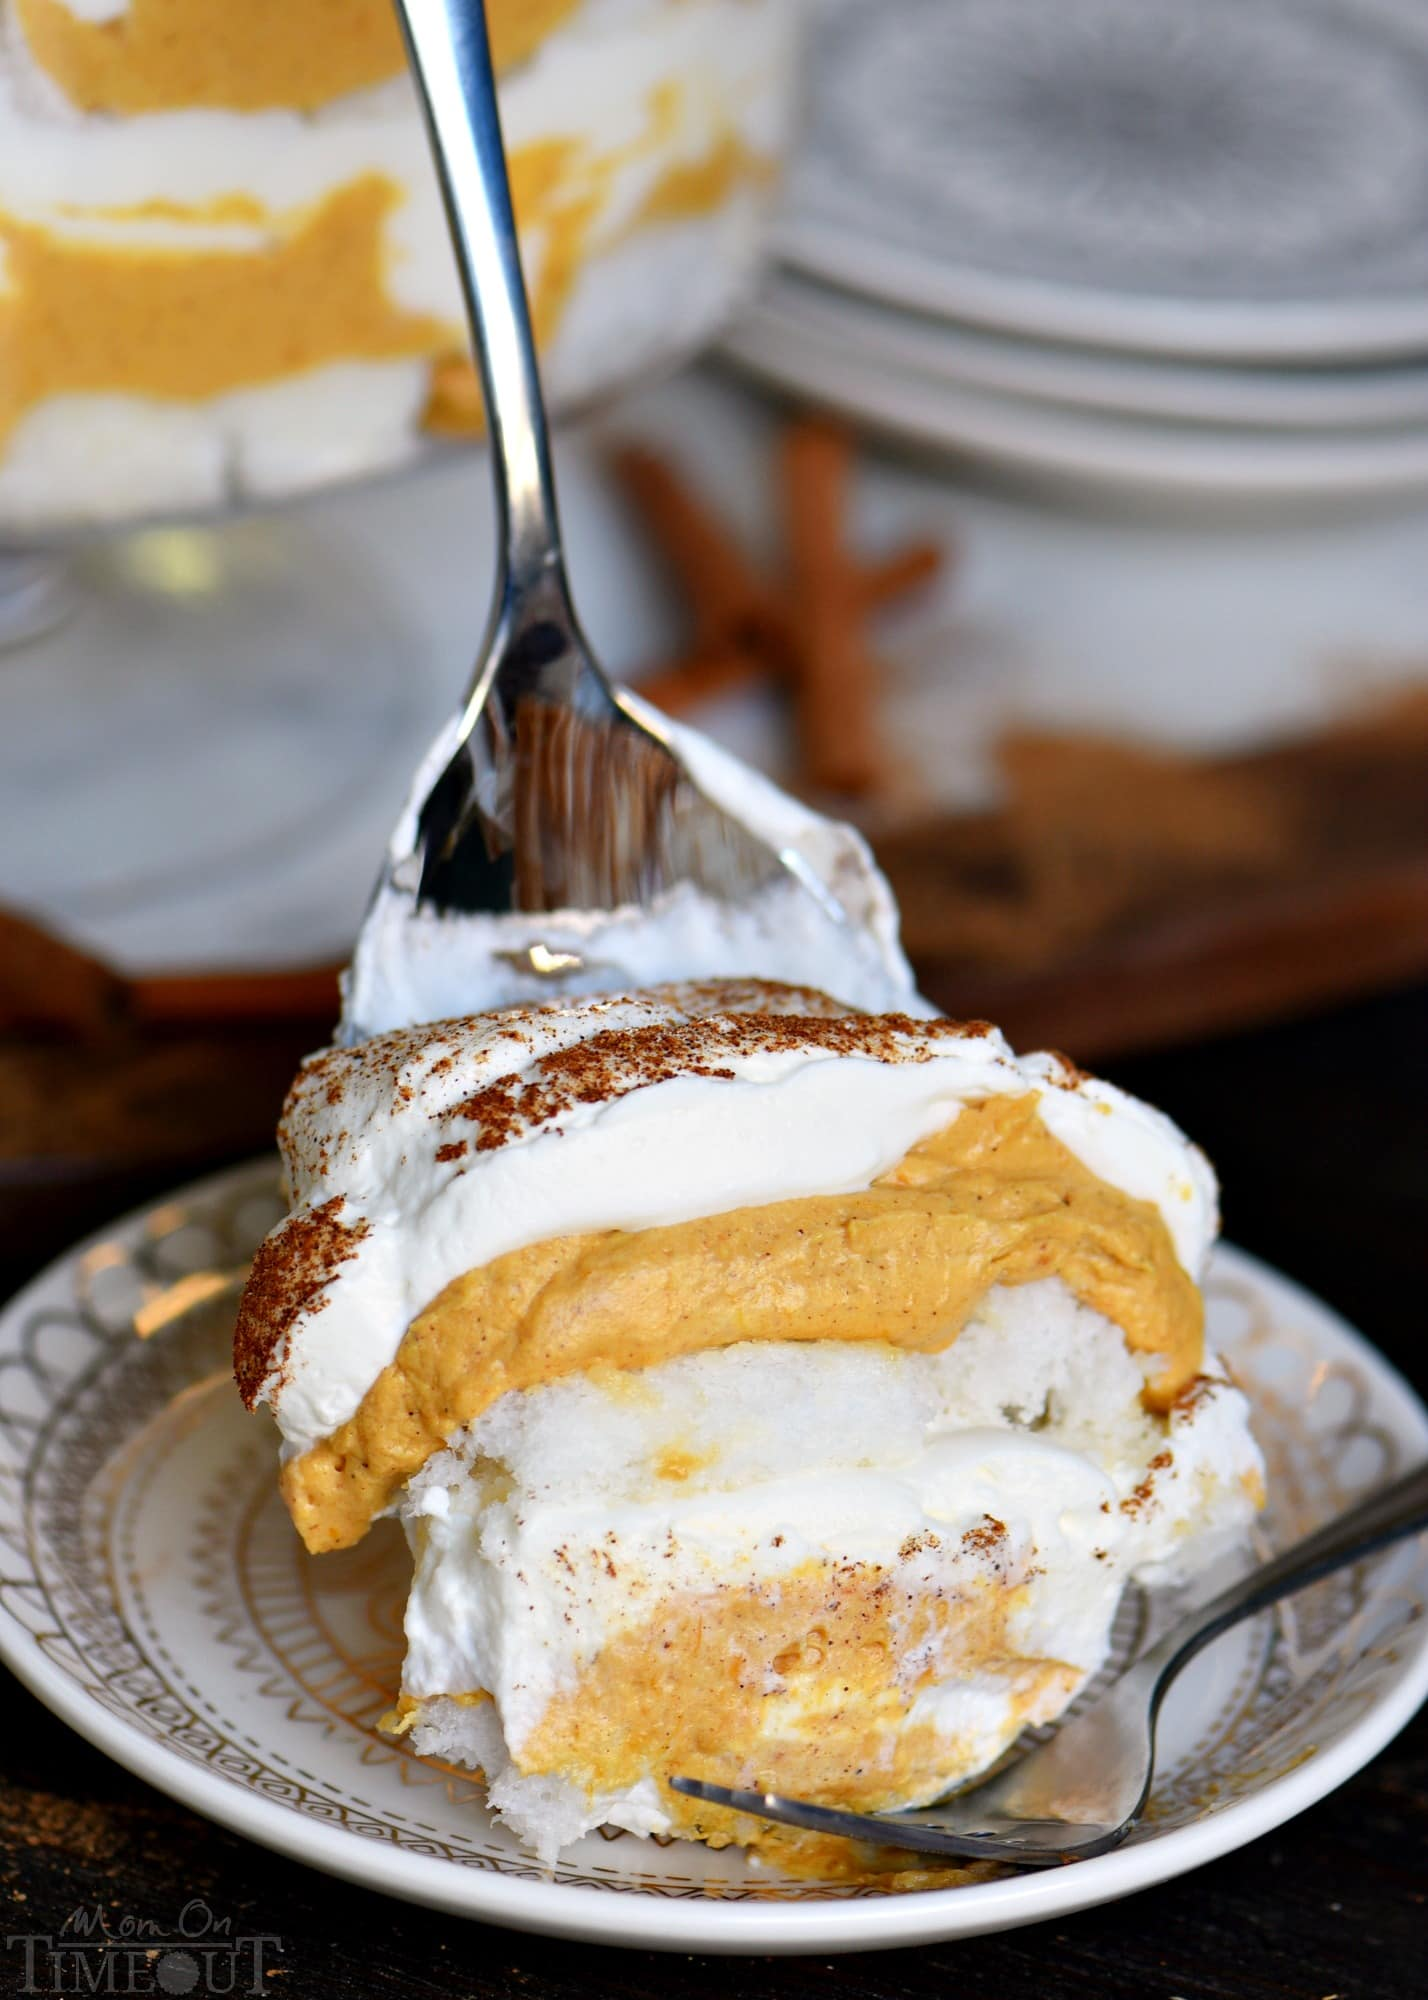 This Pumpkin Cheesecake Trifle is sure to impress all season long! Layers of pumpkin cheesecake, whipped cream and angel food cake combine for a fall treat that's impossible to resist! Gorgeous, simple, and totally delicious! // Mom On Timeout